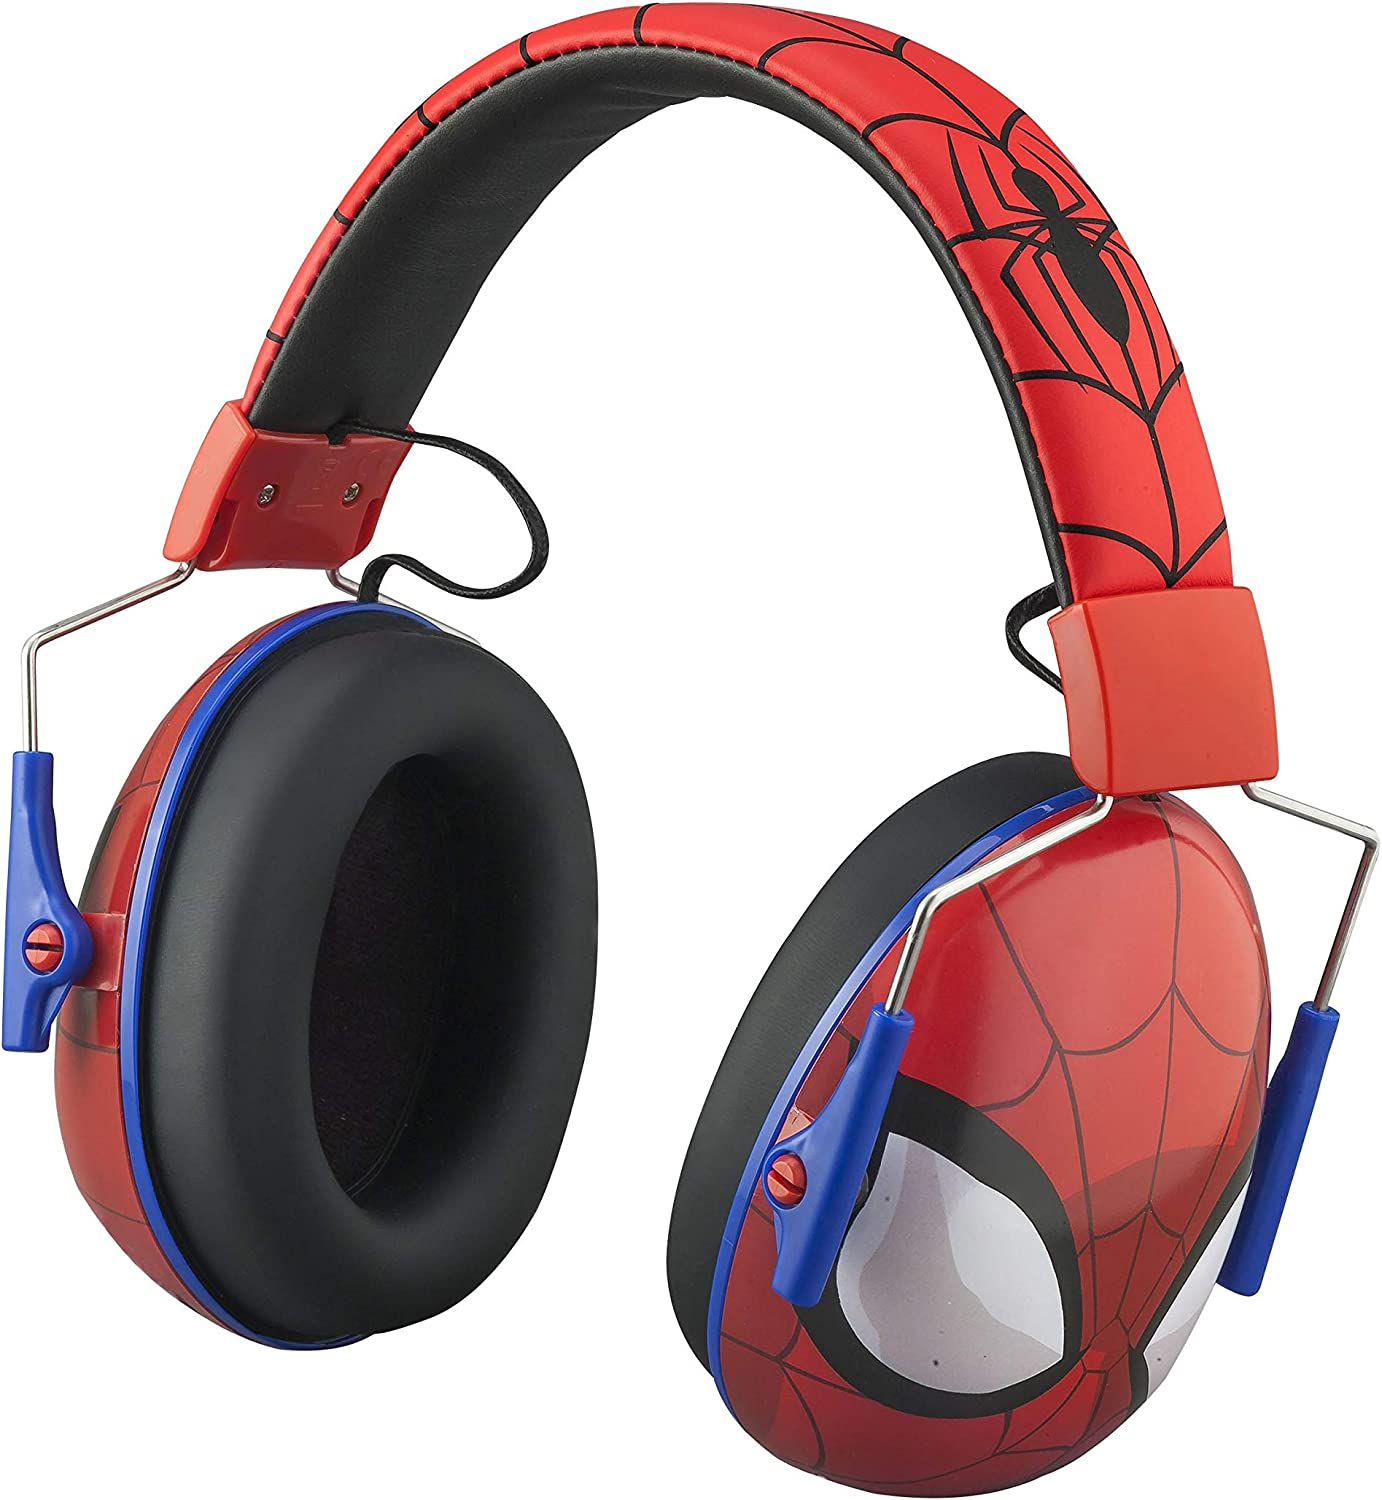 Amazon.com: Spiderman Kids Ear Protectors Earmuffs Toddler Ear Protection  and Headphones 2 in 1 Noise Reduction and Headphones for Kids Ultra  Lightweight Adjustable Safe Sound Great for Concerts, Shows, and More:  Electronics